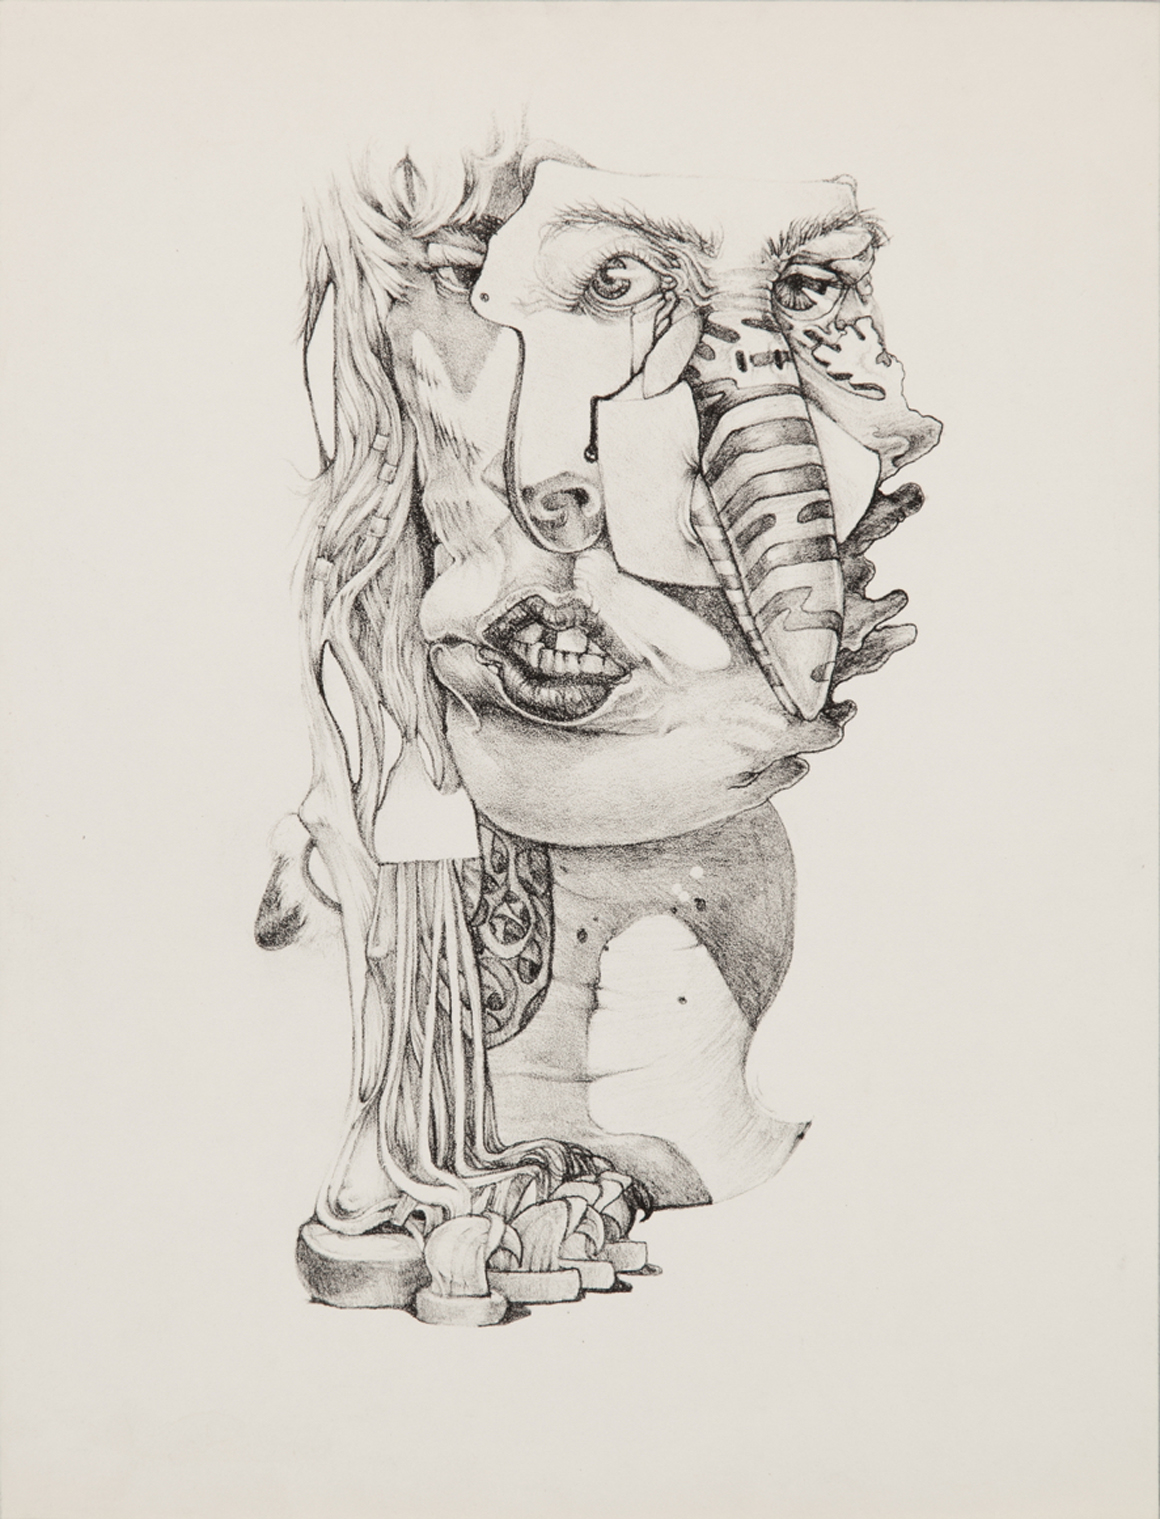 "<p><span class=""name"">Deborah Valentine</span><br><em>Self Portrait</em><span class='media'>Lithograph</span>Edition of Edition of 4<br>1976<br><a class='inquire' href='mailto:info@gildargallery.com?subject=Artwork Inquiry DVAL0001&body=I am interested in finding out more about Self Portrait by Deborah Valentine'>Inquire</a></p>"